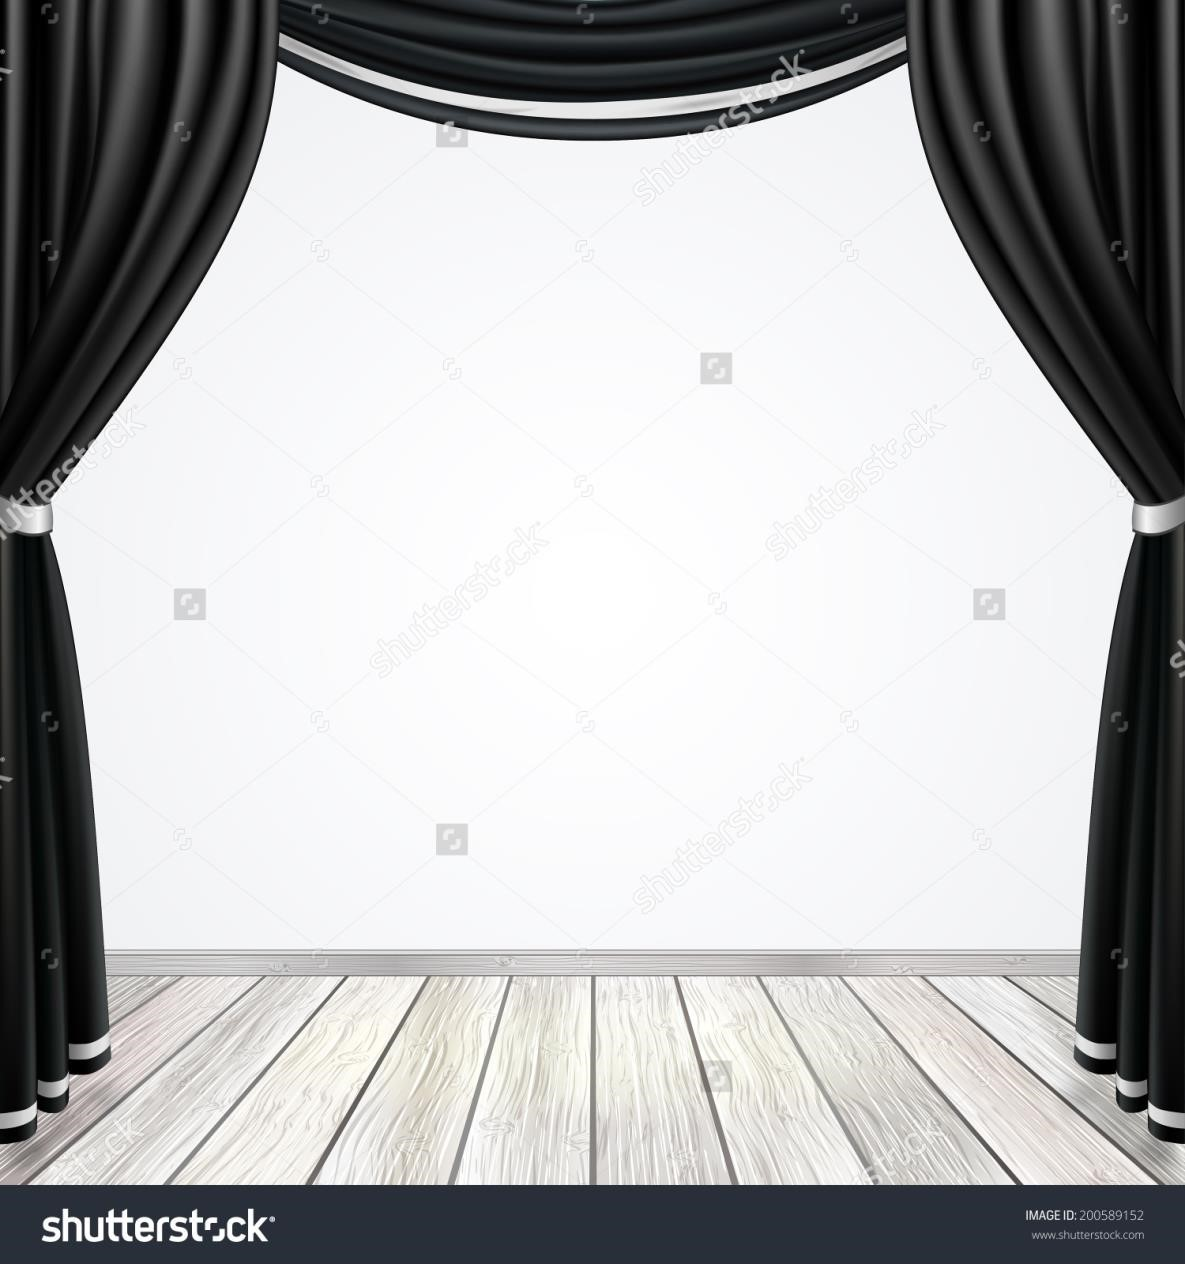 Theatre clipart kid drama Size Clipart Curtains Sketch